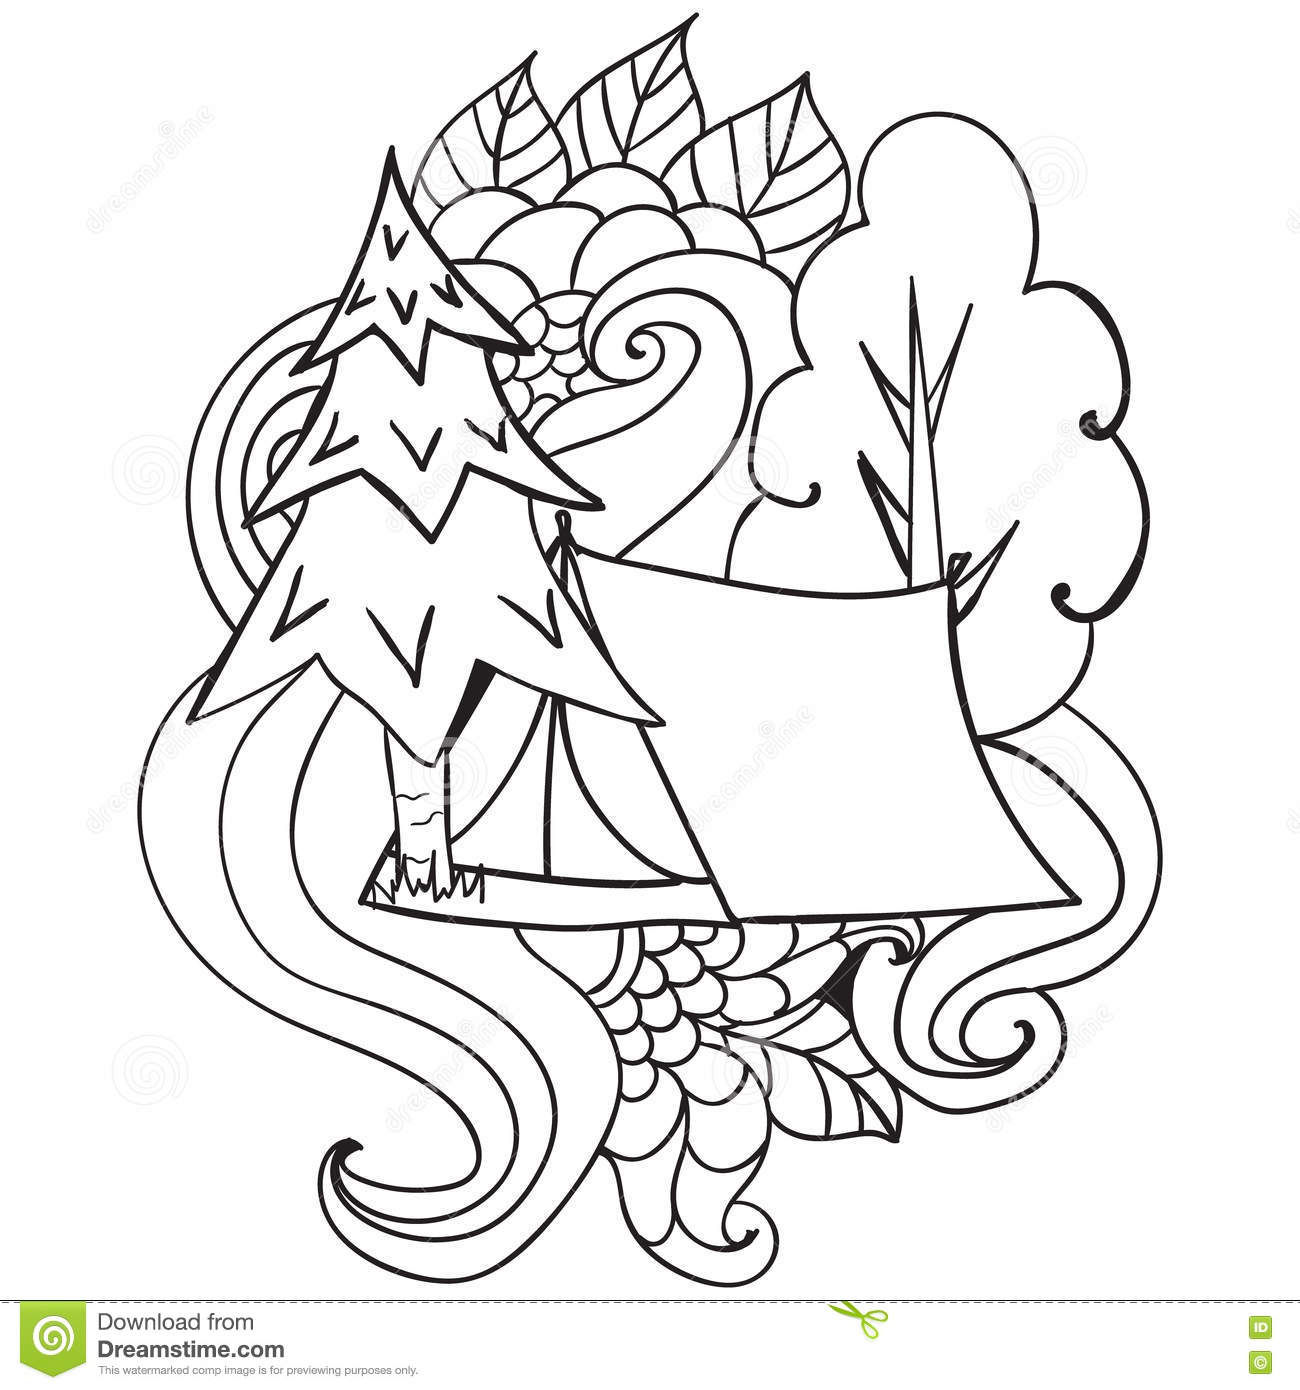 outdoor coloring pages - outdoor camping coloring coloring pages